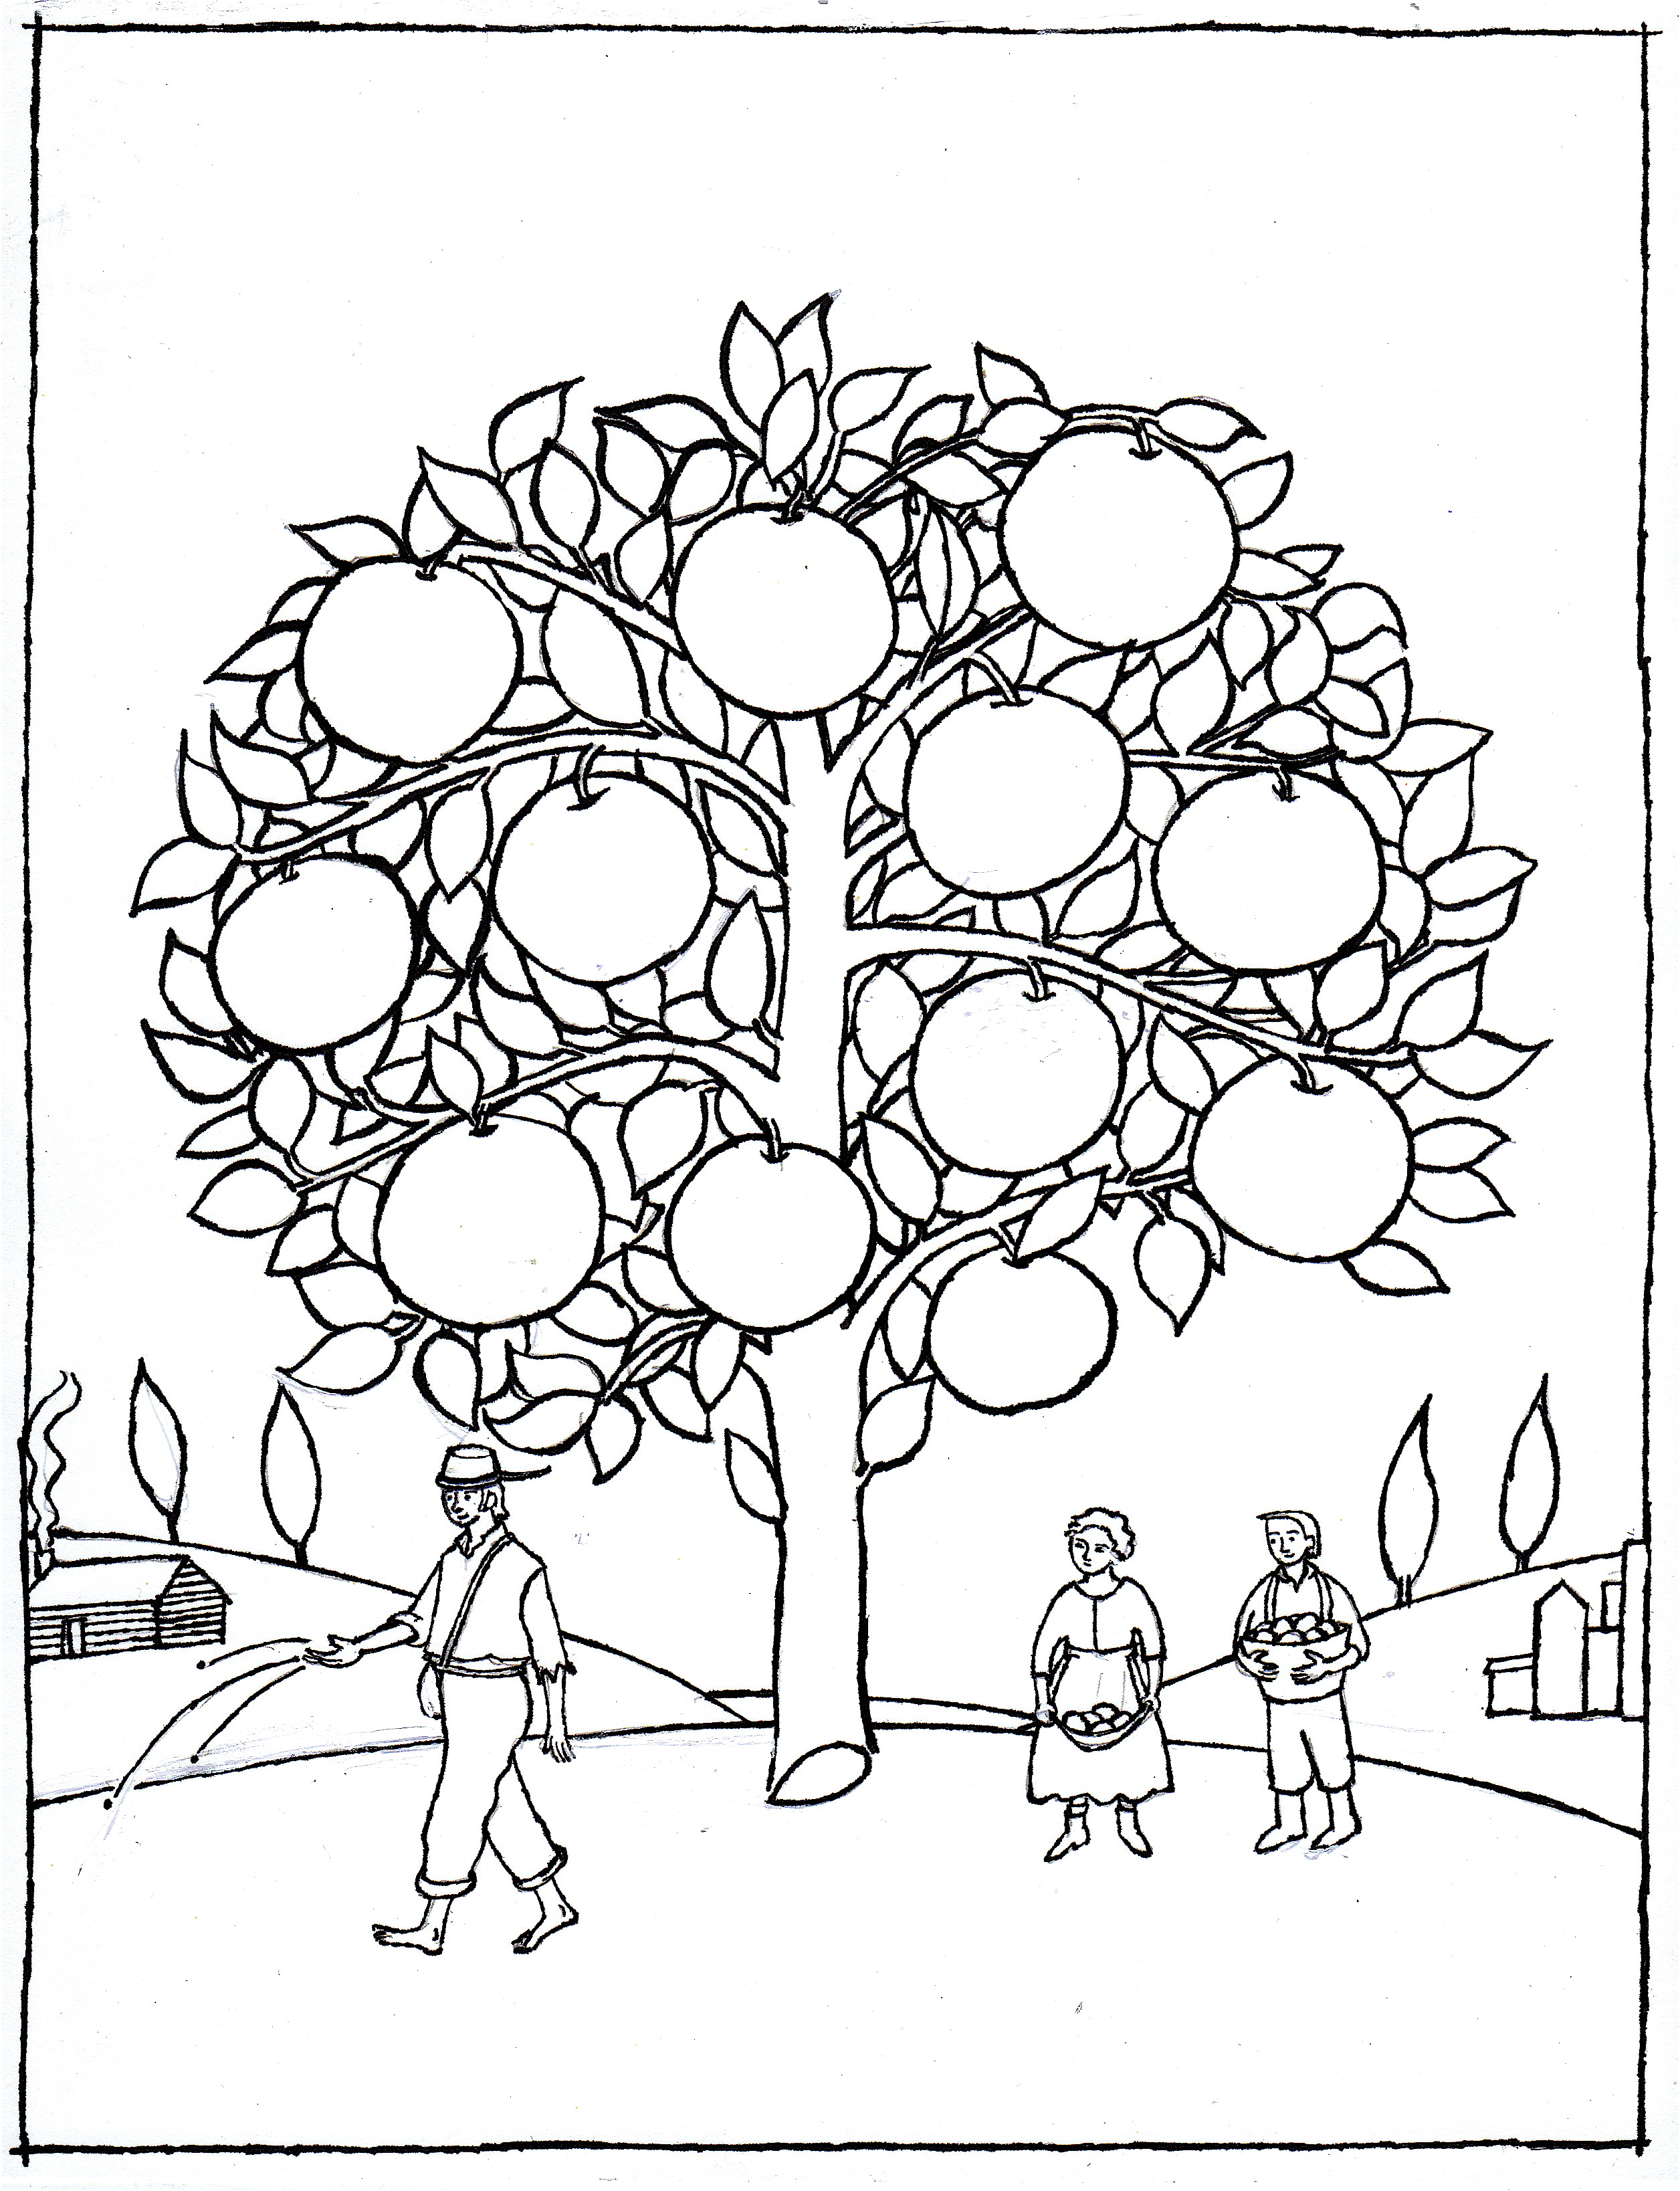 Johnny Appleseed Coloring Page Here Is The Johnny Appleseed Activity You've Been Craving  Lynne .